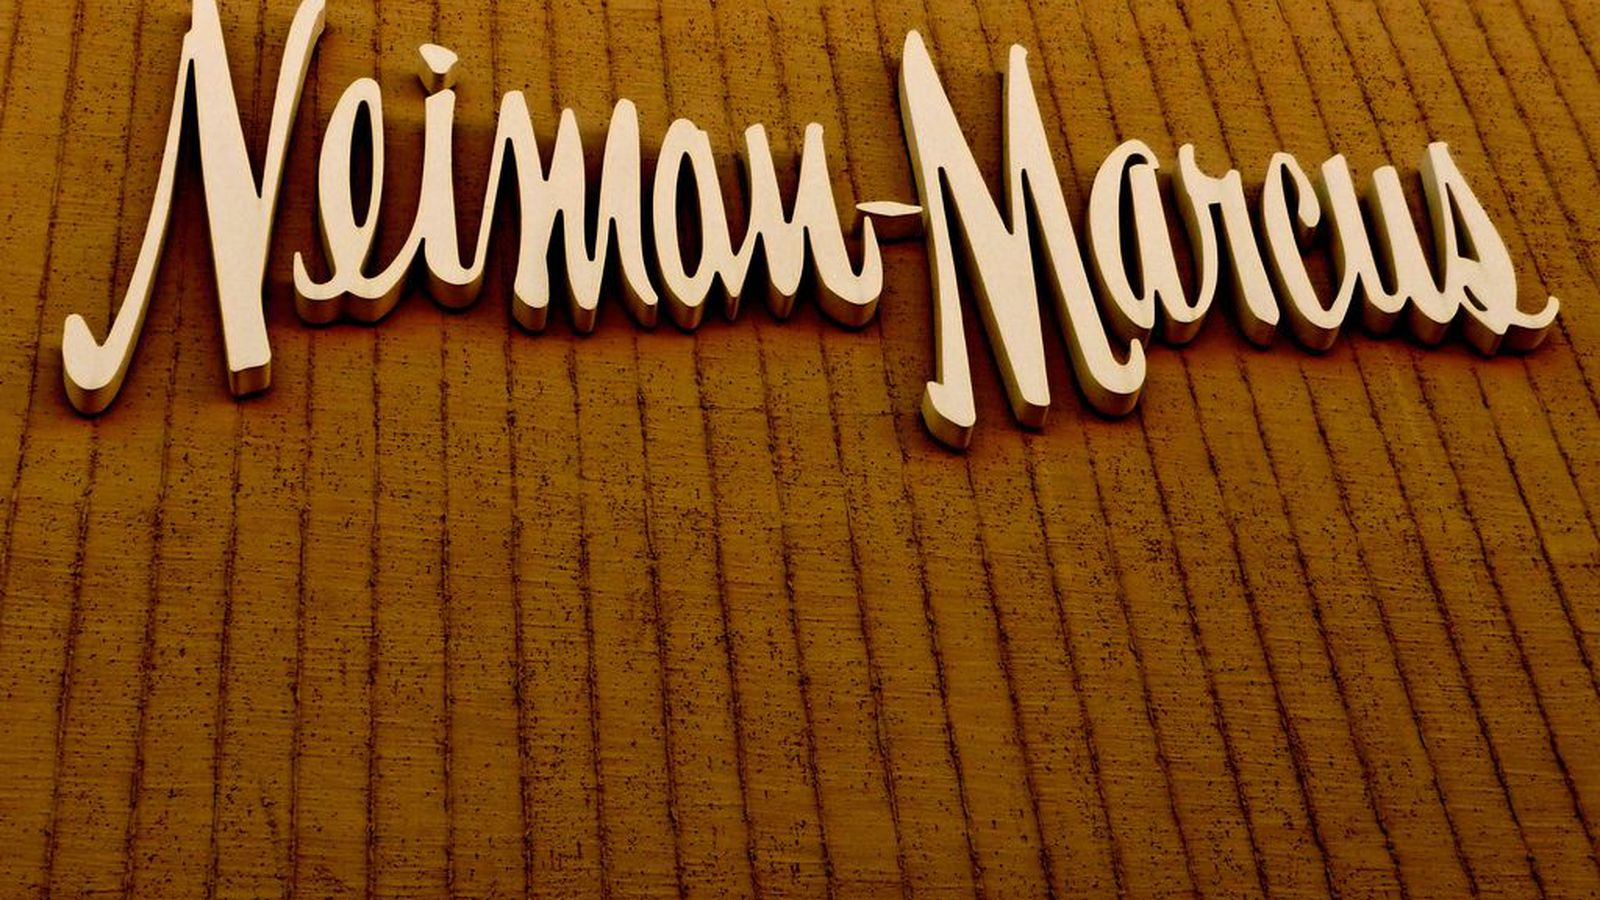 Neiman marcus credit card - Neiman Marcus Ceo Apologizes For Data Breach Offers Free Credit Monitoring The Verge